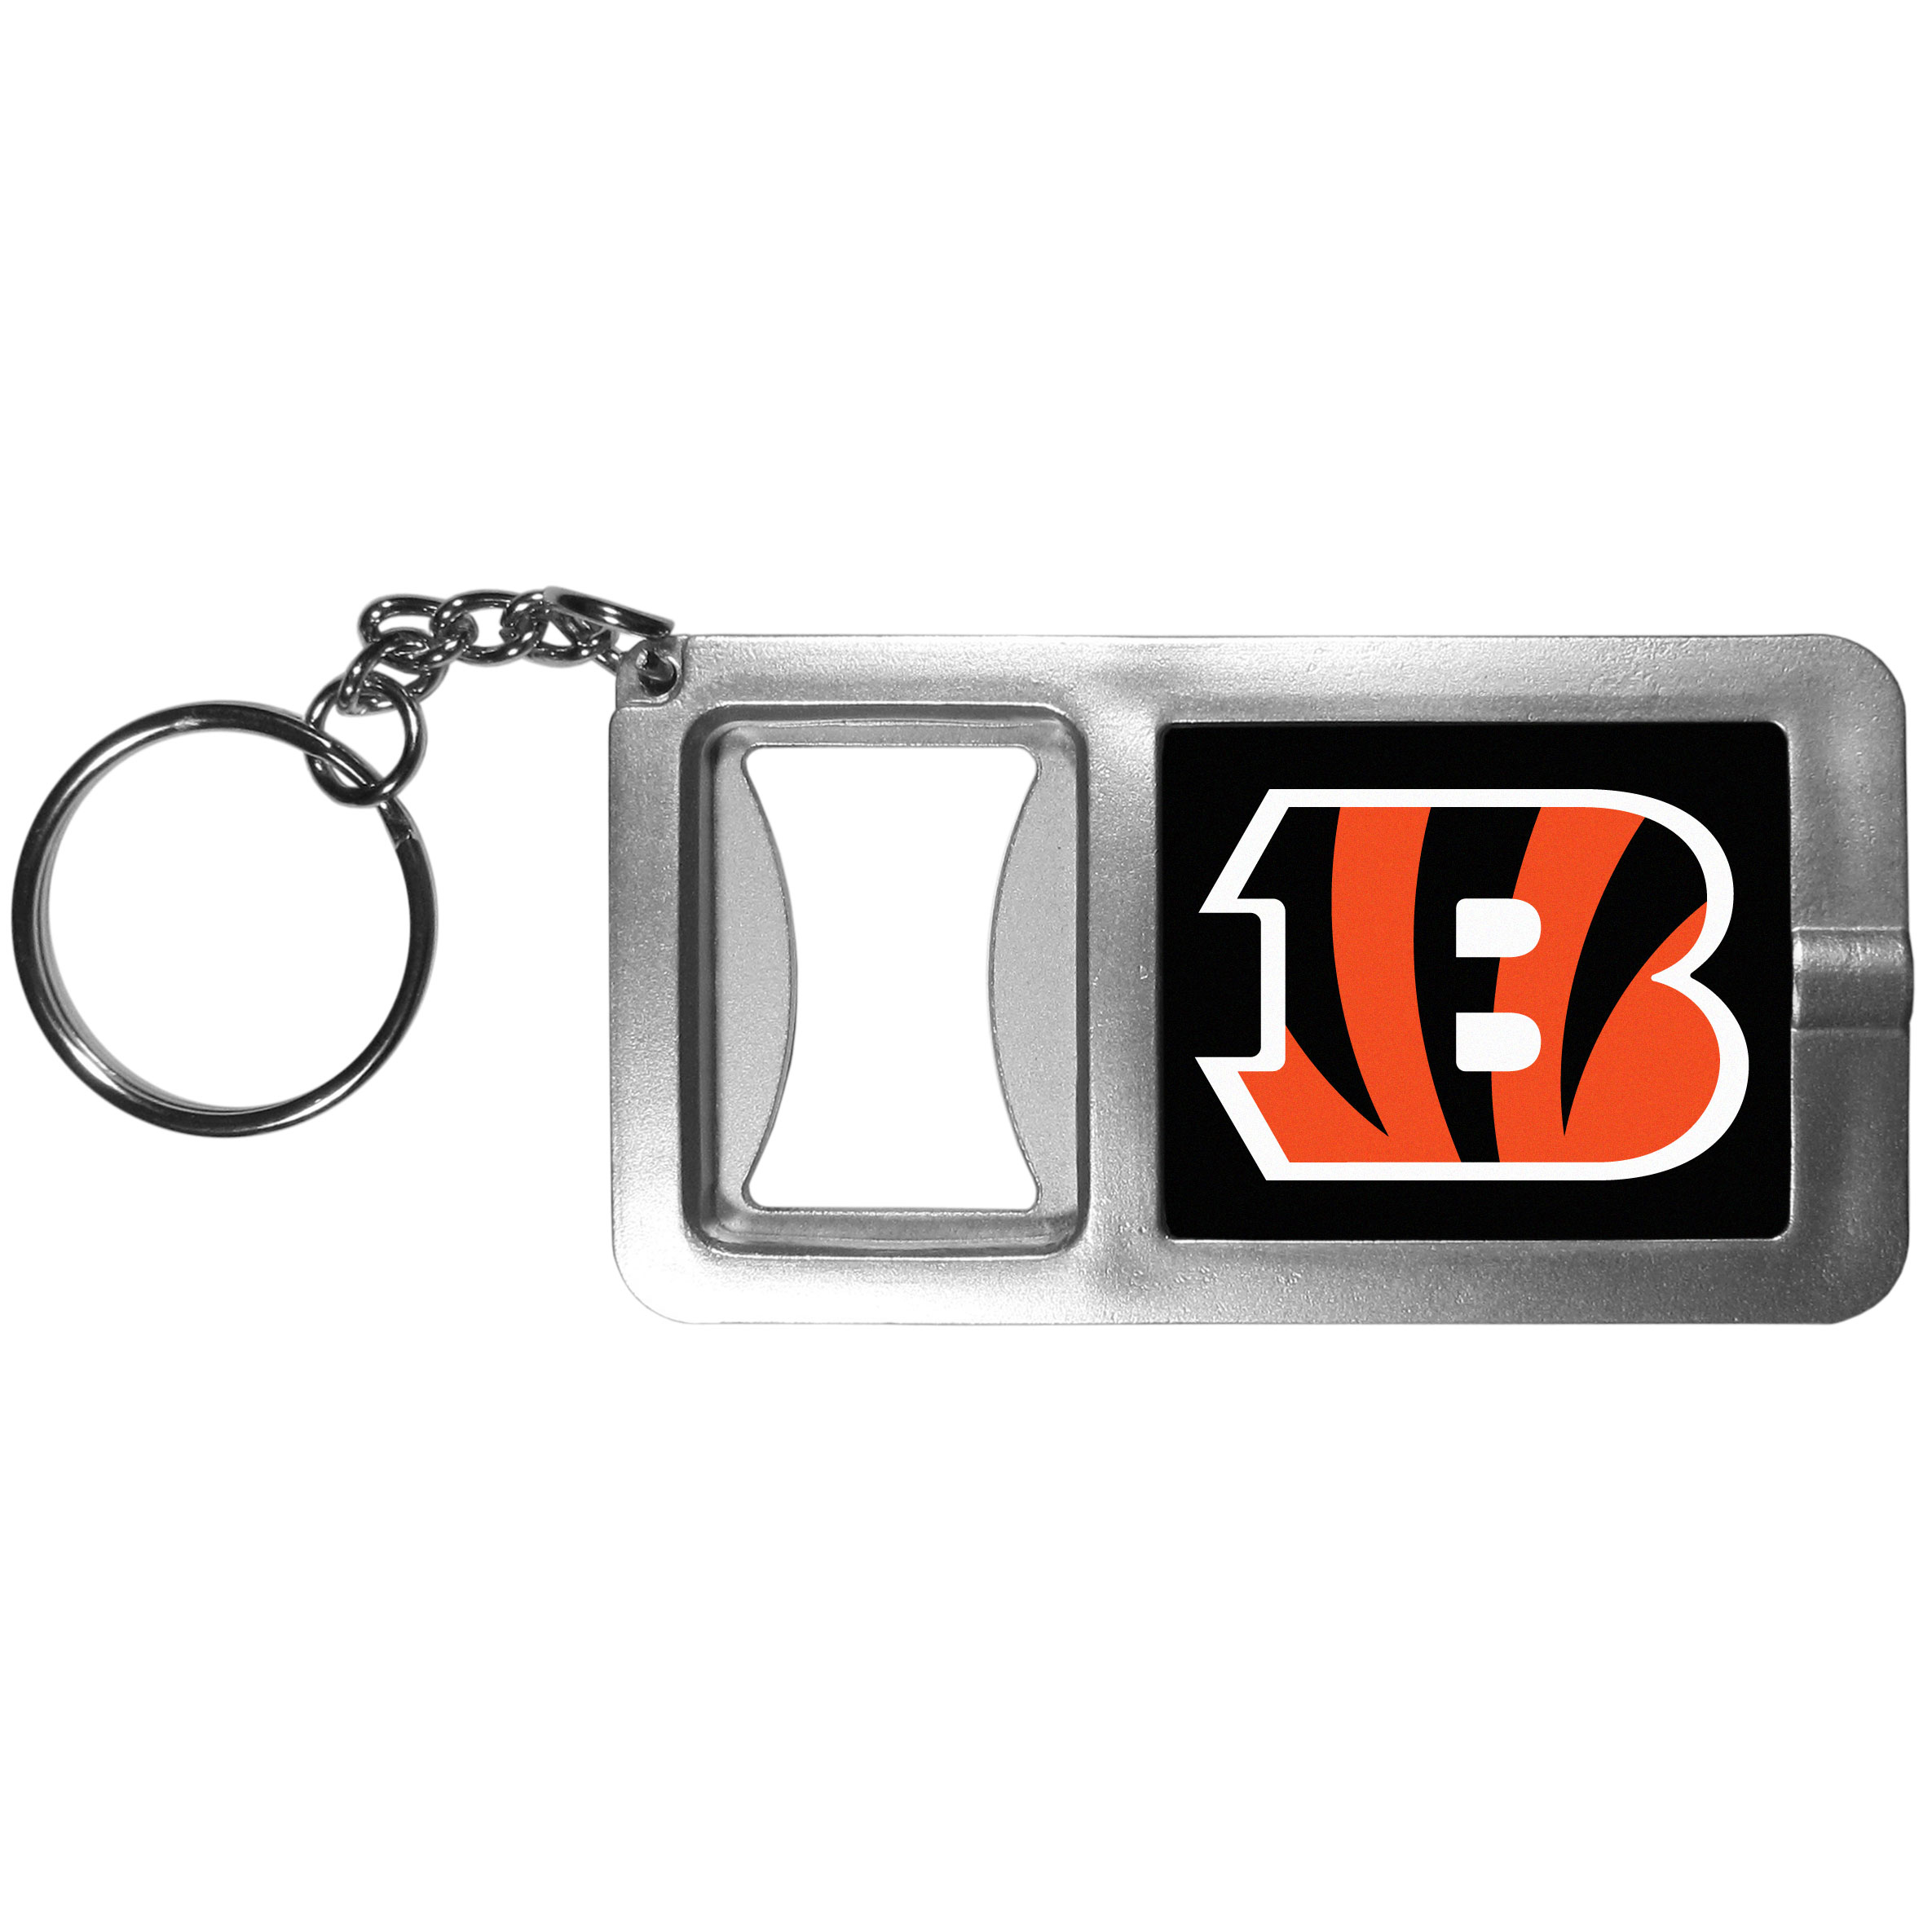 Cincinnati Bengals Flashlight Key Chain with Bottle Opener - Never be without light with our Cincinnati Bengals flashlight keychain that features a handy bottle opener feature. This versatile key chain is perfect for camping and travel and is a great way to show off your team pride!